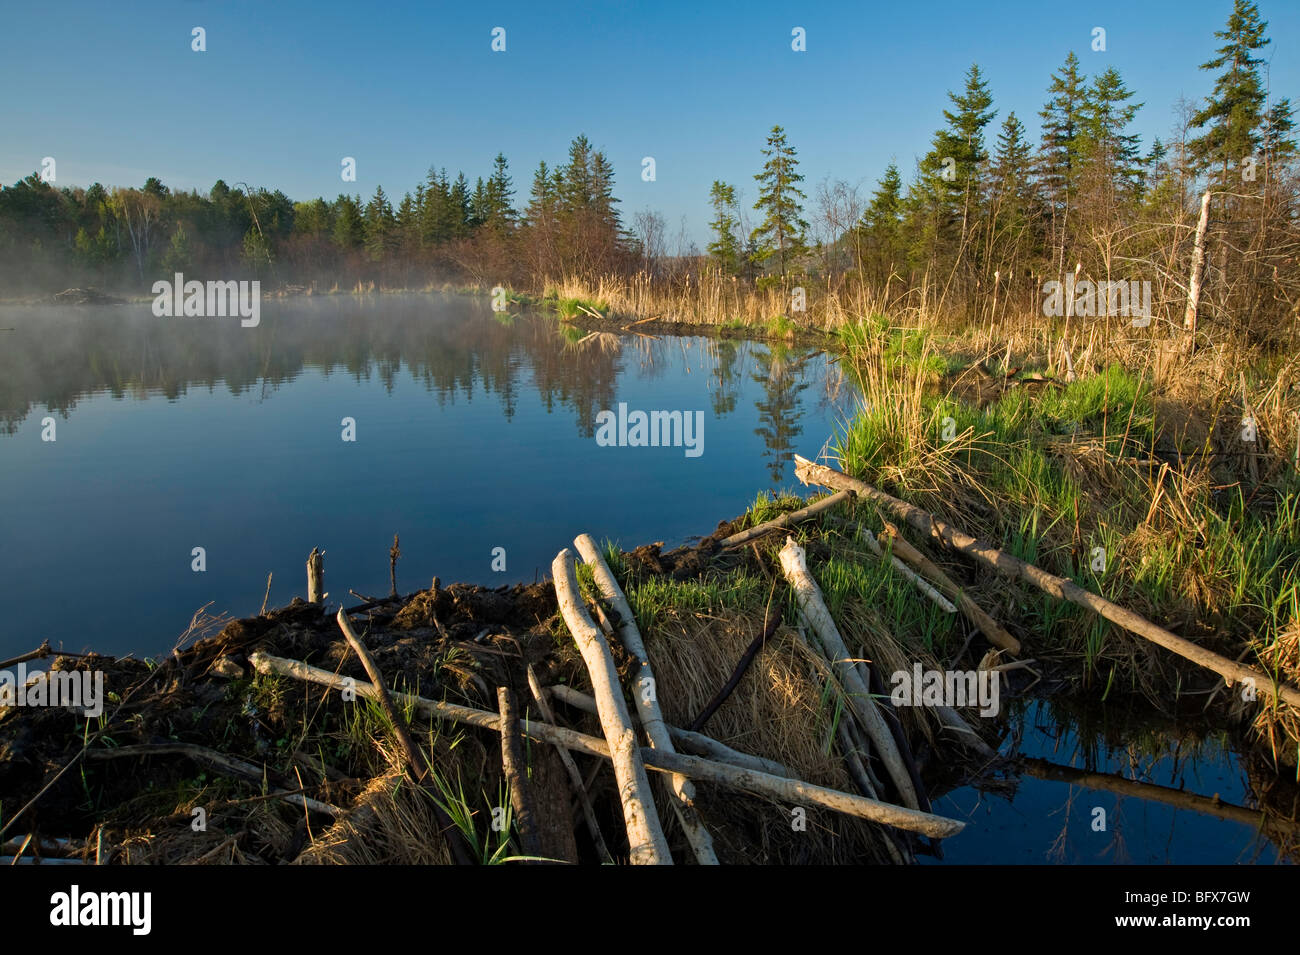 Emerging grasses on beaver dam in early spring, Greater Sudbury, Ontario, Canada - Stock Image